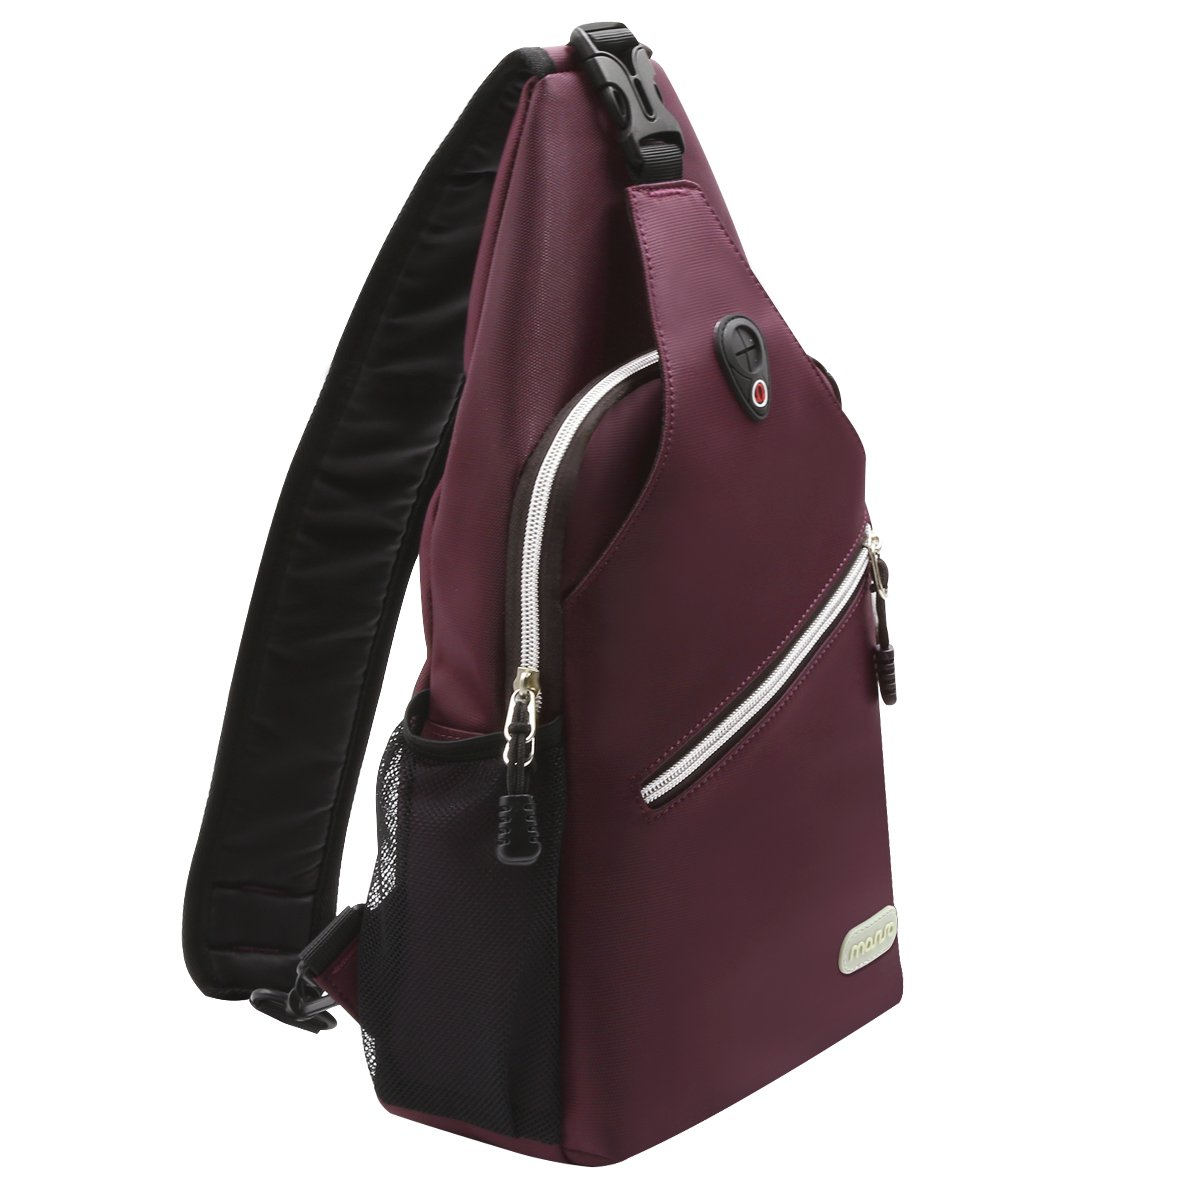 MOSISO Sling Backpack, Polyester Crossbody Shoulder Bag for Men Women Girls Boys, Wine Red by MOSISO